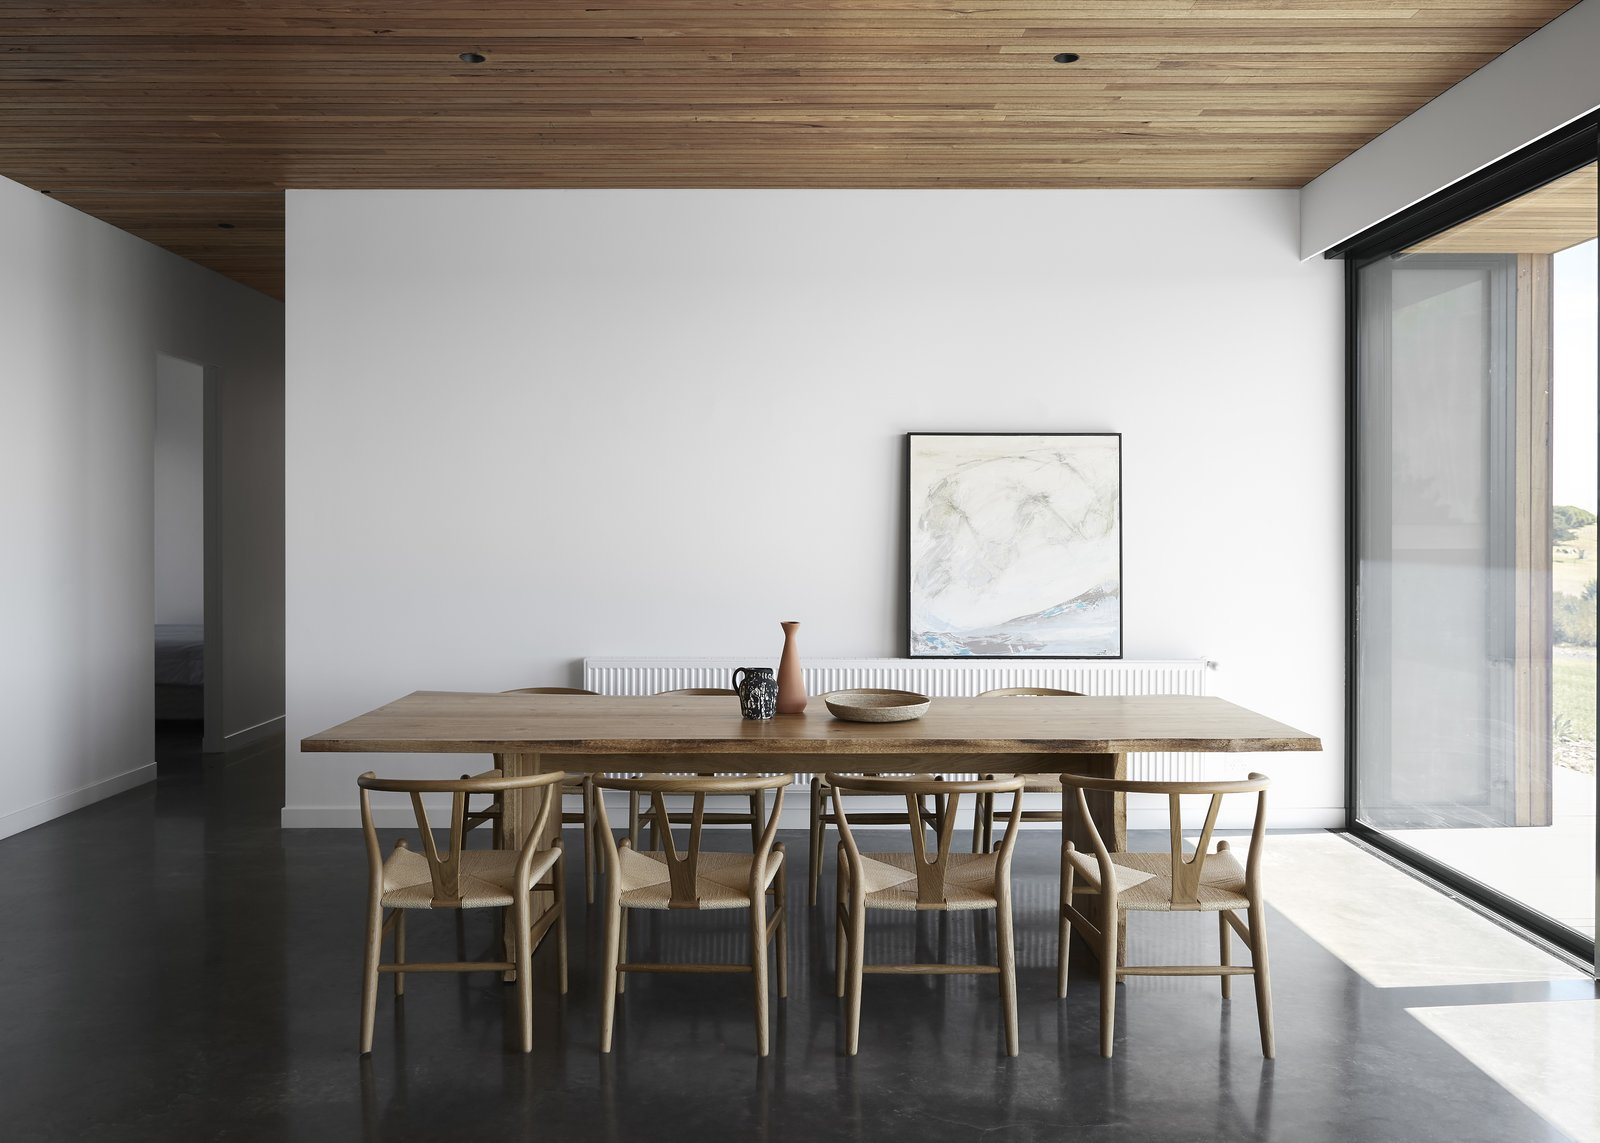 Dining Room, Table, Concrete Floor, Chair, and Recessed Lighting The house has floors of burnished concrete, providing thermal mass in the cooler months. The cement retains heat from the sun during the day and then slowly releases it back into the atmosphere to warm the interiors in the evening.     Photo 6 of 10 in Two Timber-Clad Pavilions Make Up This Australian Family Retreat